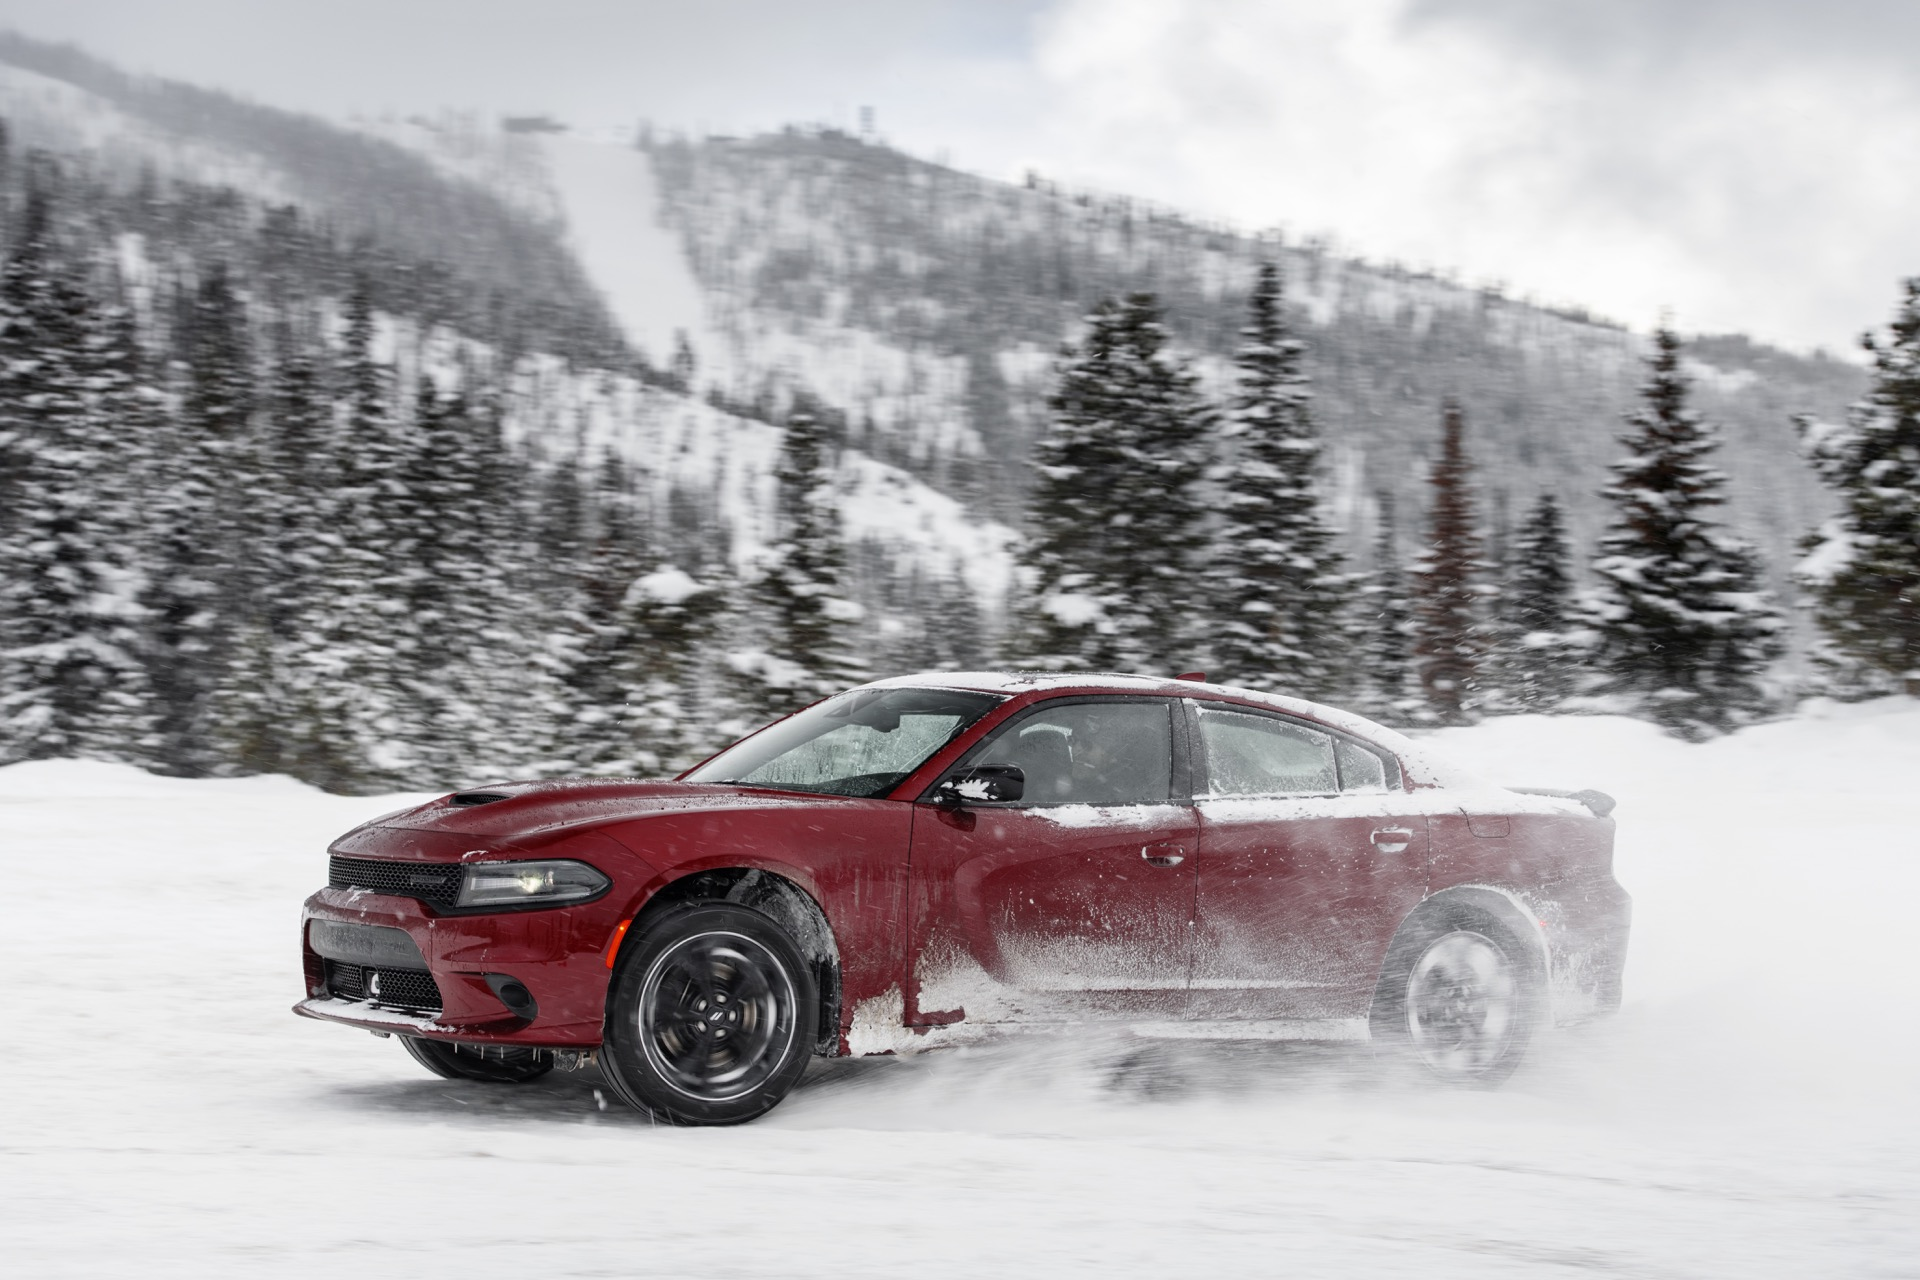 Get A Grip These All Wheel Drive Vehicles Handle Ice And Snow